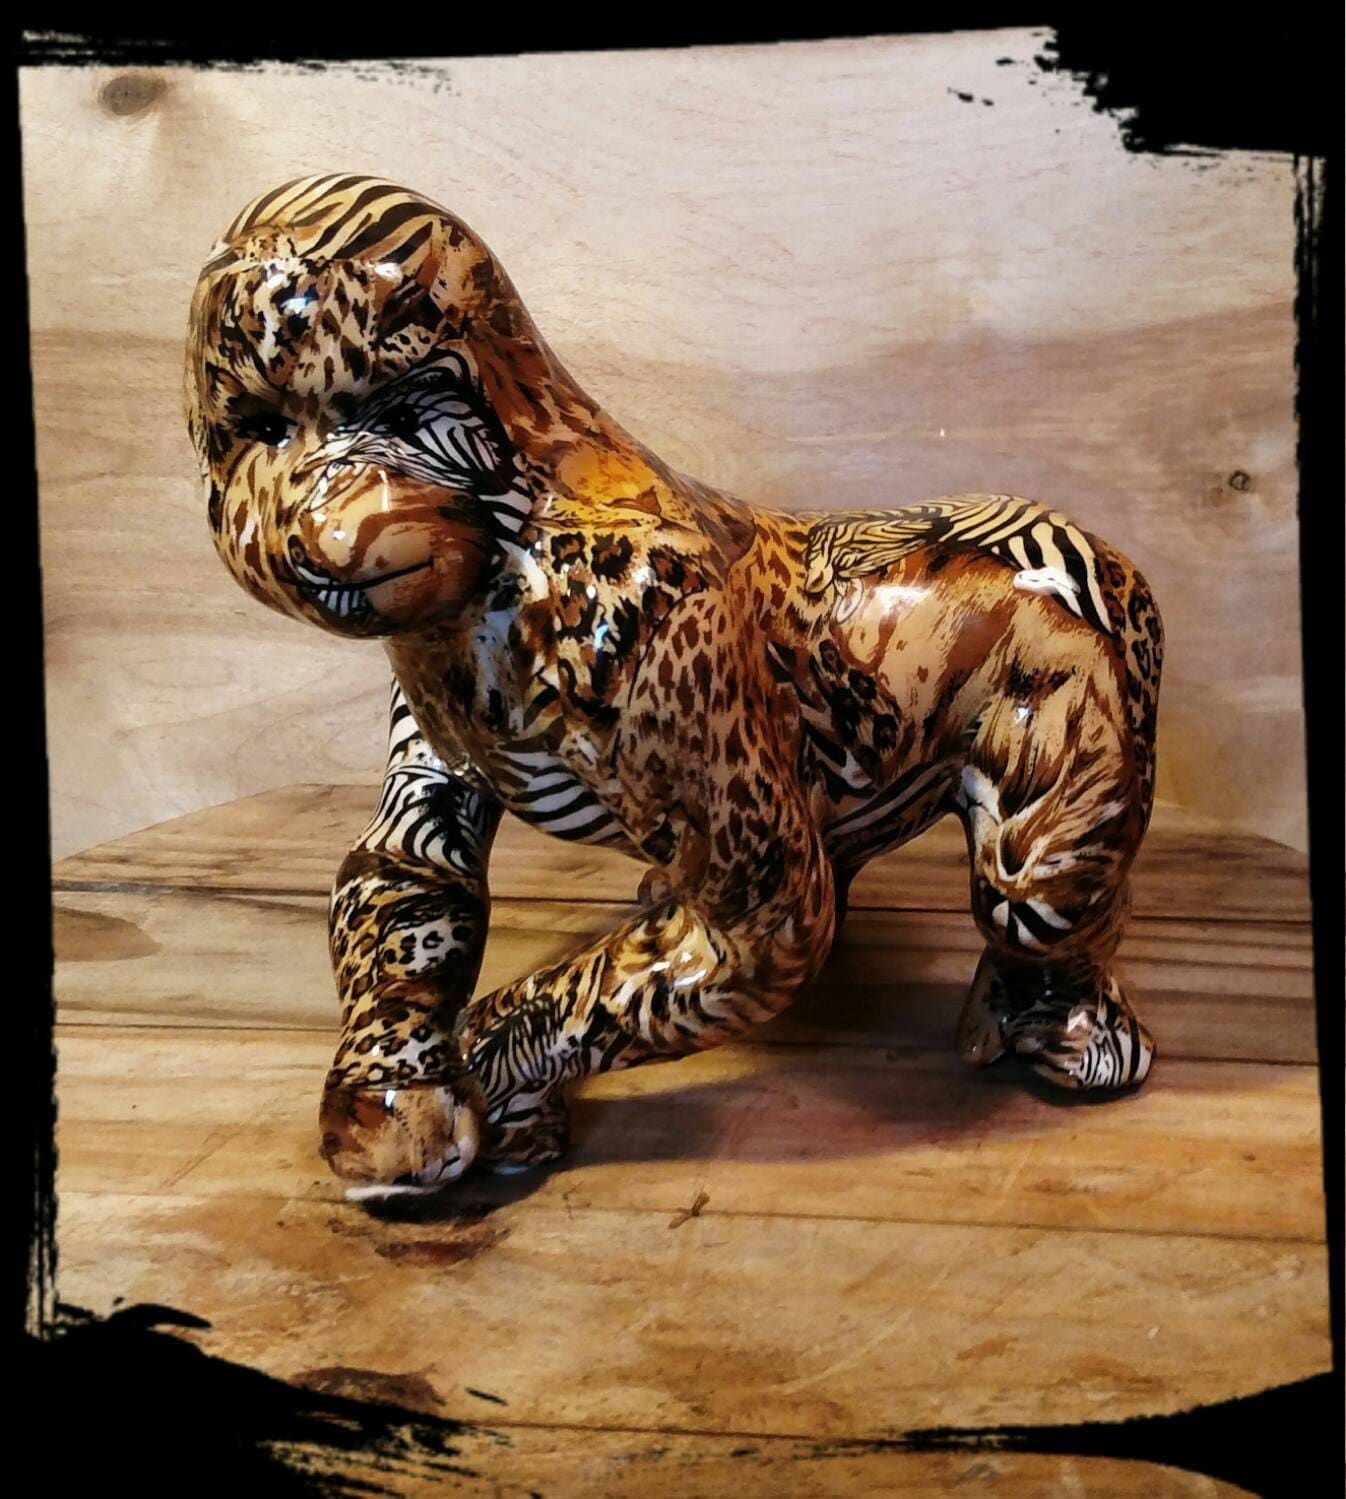 Collectible la vie safari gorilla figurine wildlife art - Gorilla figurines ...